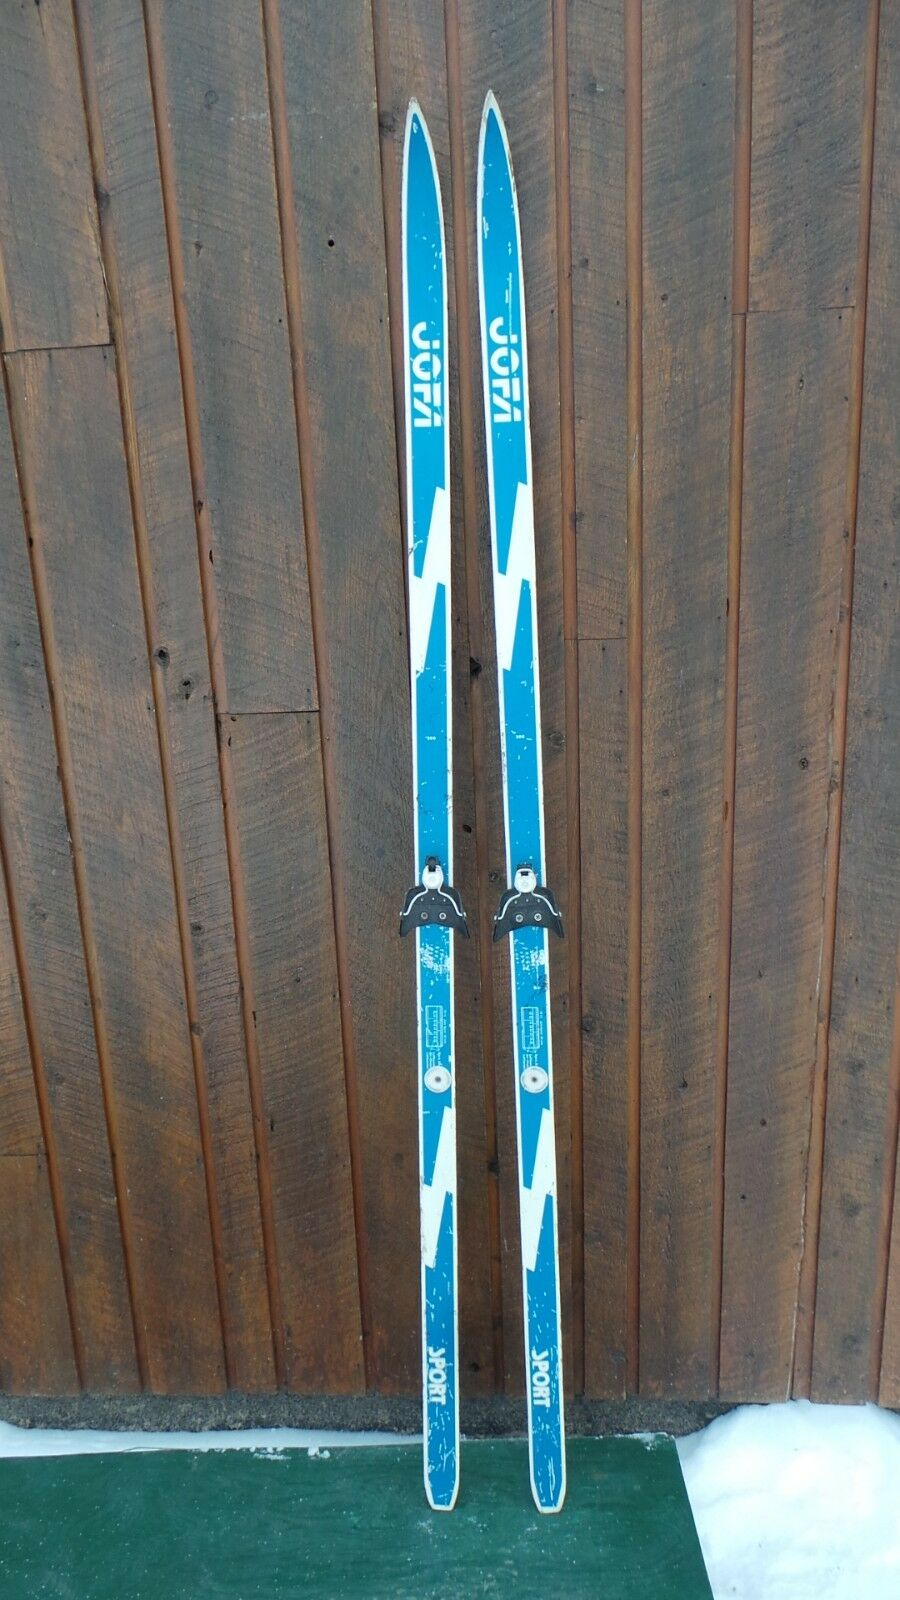 VINTAGE Wooden 79  Skis Has bluee and White Finish and Great OLD Character